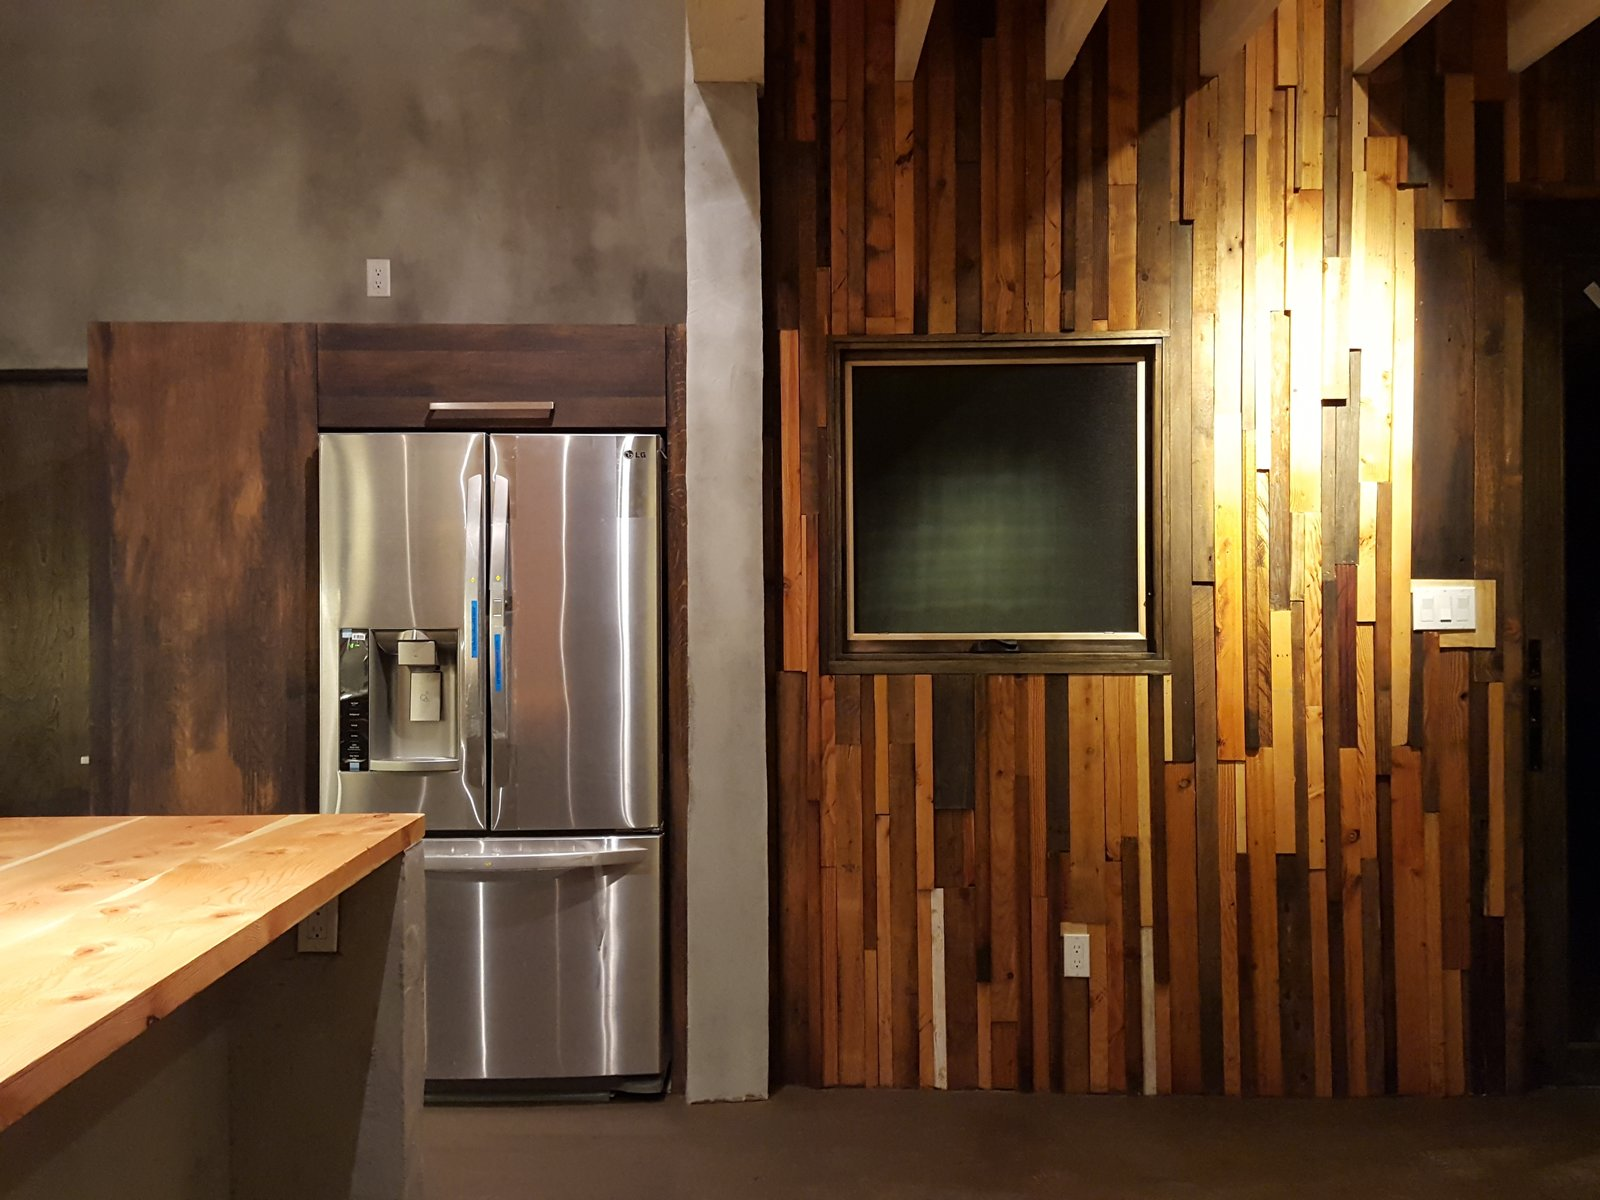 Kitchen, Wood Counter, Refrigerator, Wood Cabinet, and Track Lighting Kitchen/Dining  Santa Fe East Side Home by Ju Tan